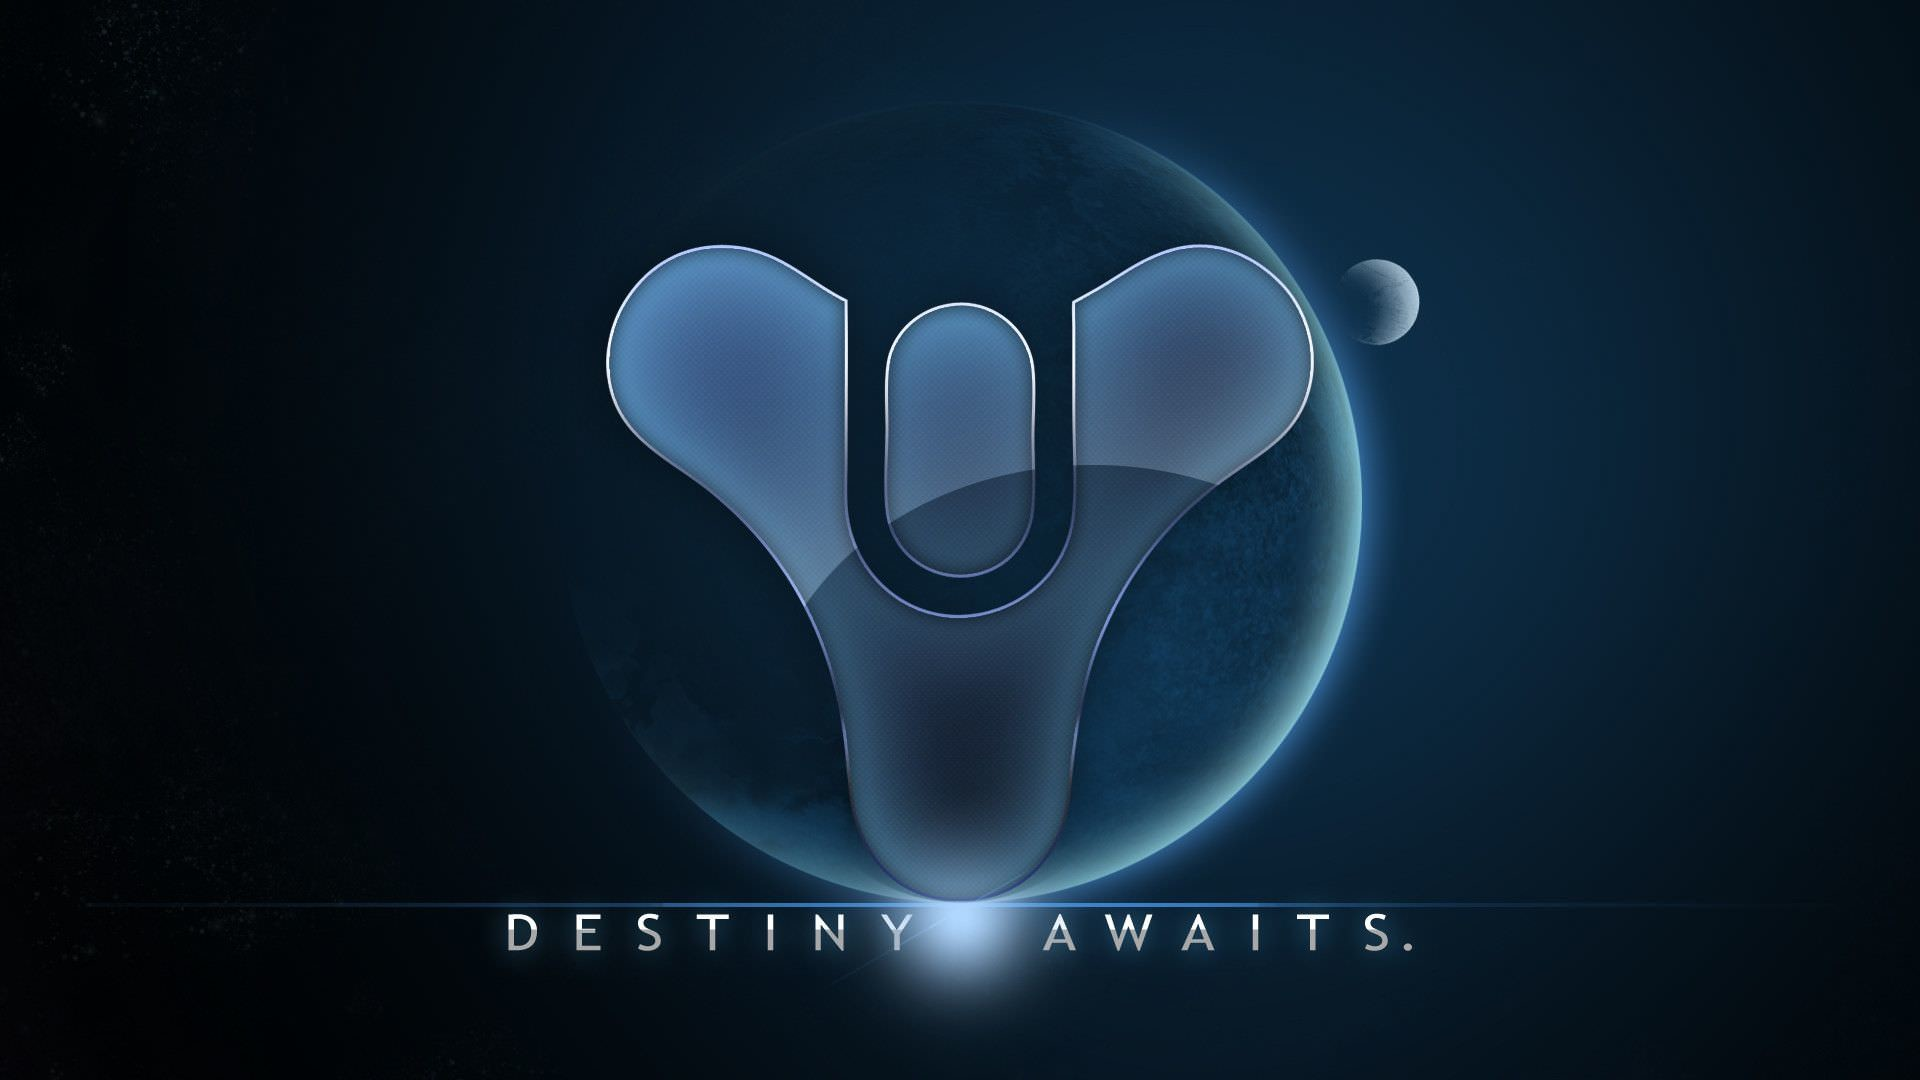 Destiny Backgrounds Wallpapers Images Pictures Design Trends Cool Vivid  Flowers In Wallpaper Windows With Download Hd …